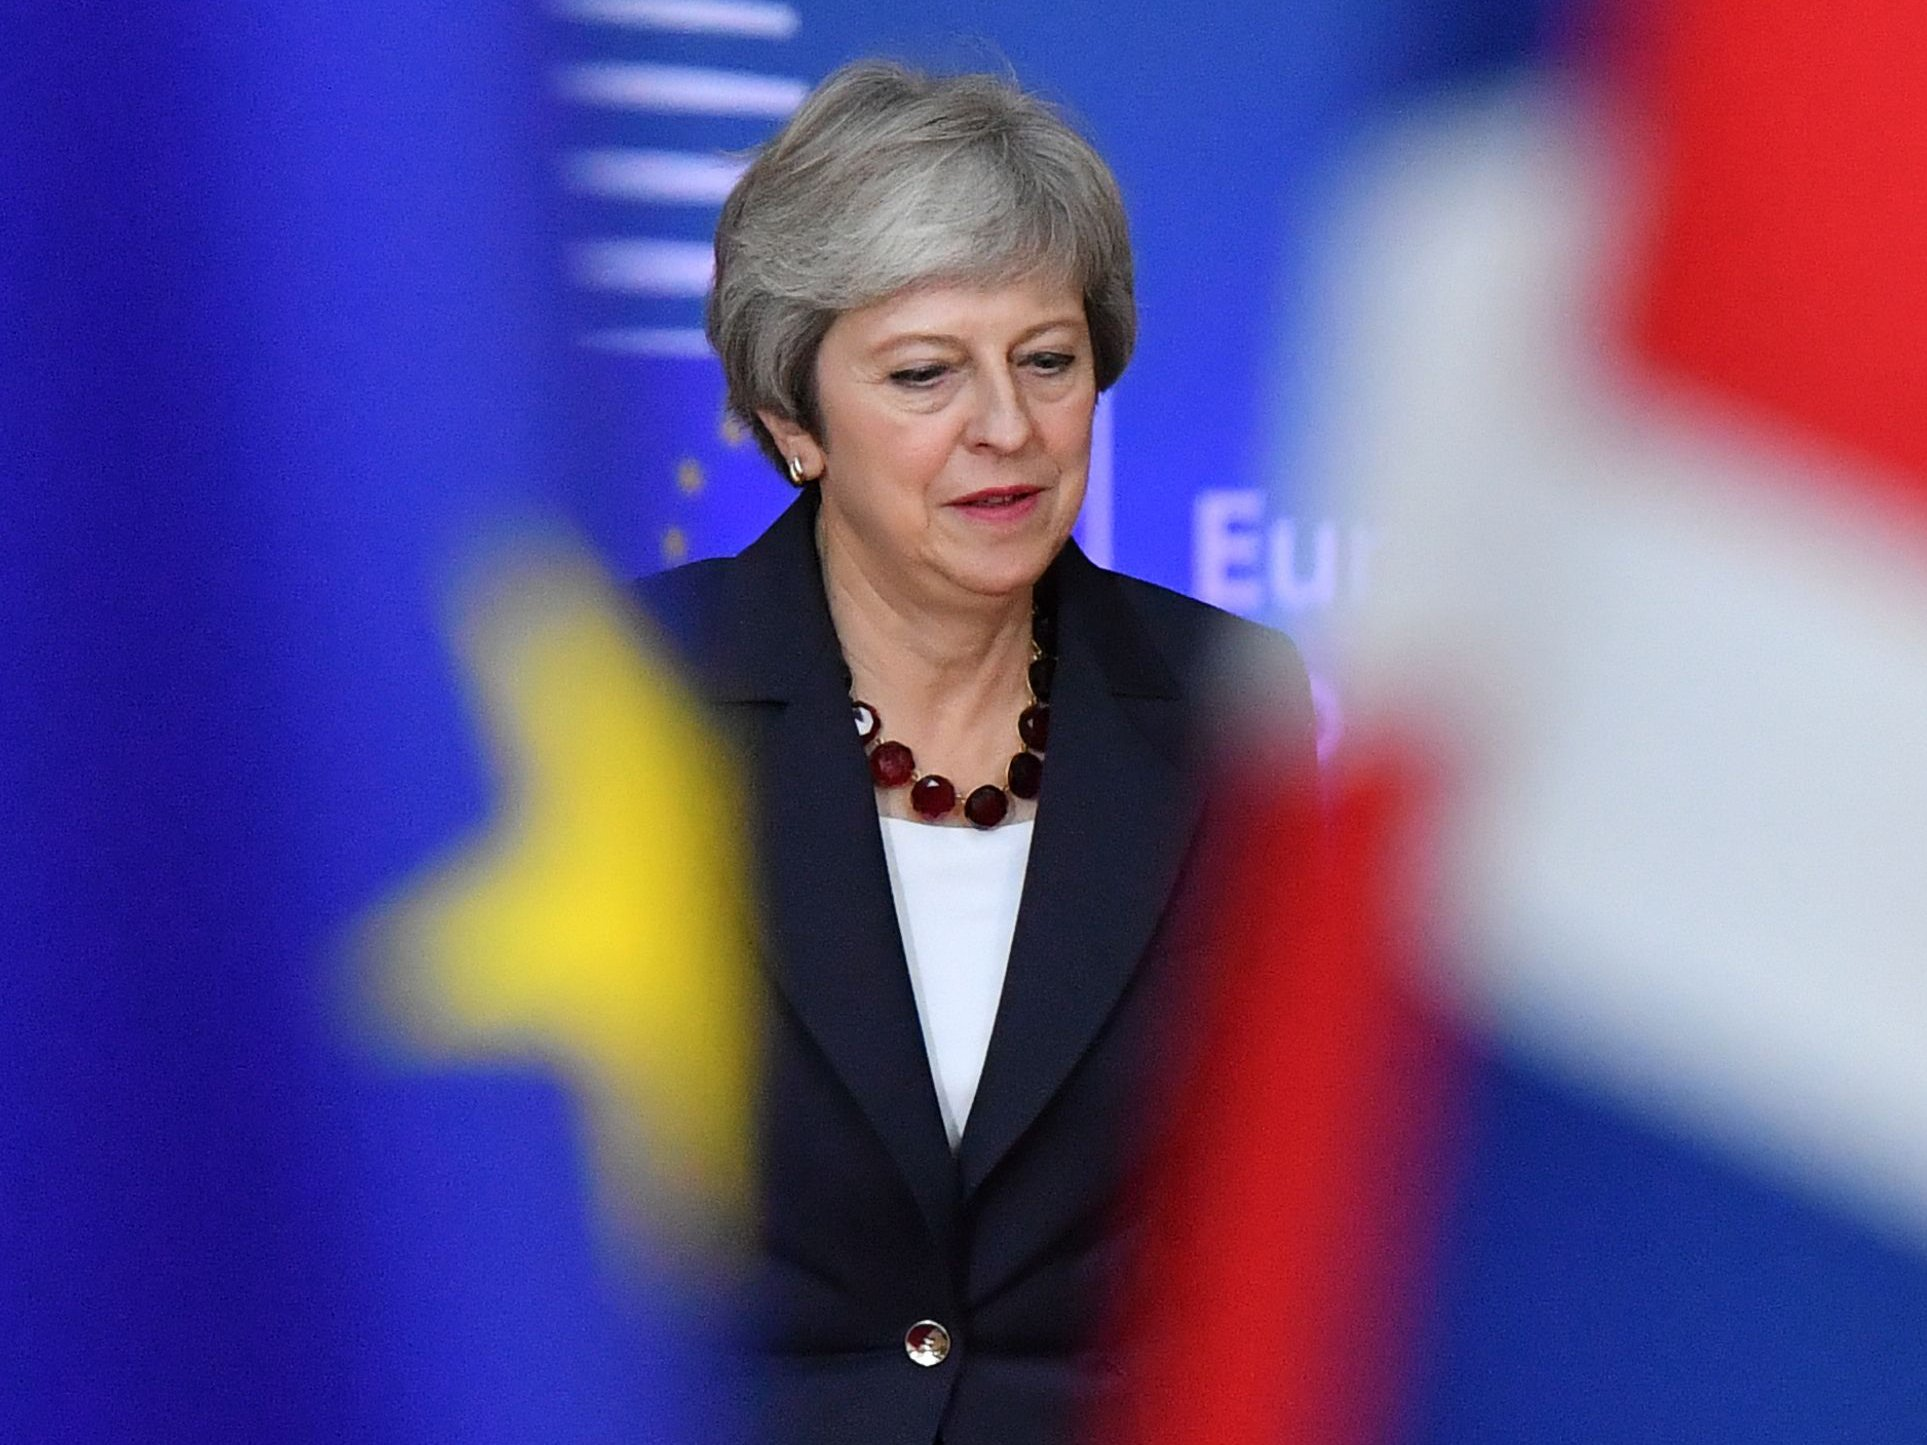 Britain's Prime Minister Theresa May arrives at the European Council in Brussels on October 17, 2018. - British Prime Minister Theresa May is due to address a summit of European Union leaders in which Brexit negotiations are expected to be top of the agenda. (Photo by EMMANUEL DUNAND / AFP)EMMANUEL DUNAND/AFP/Getty Images